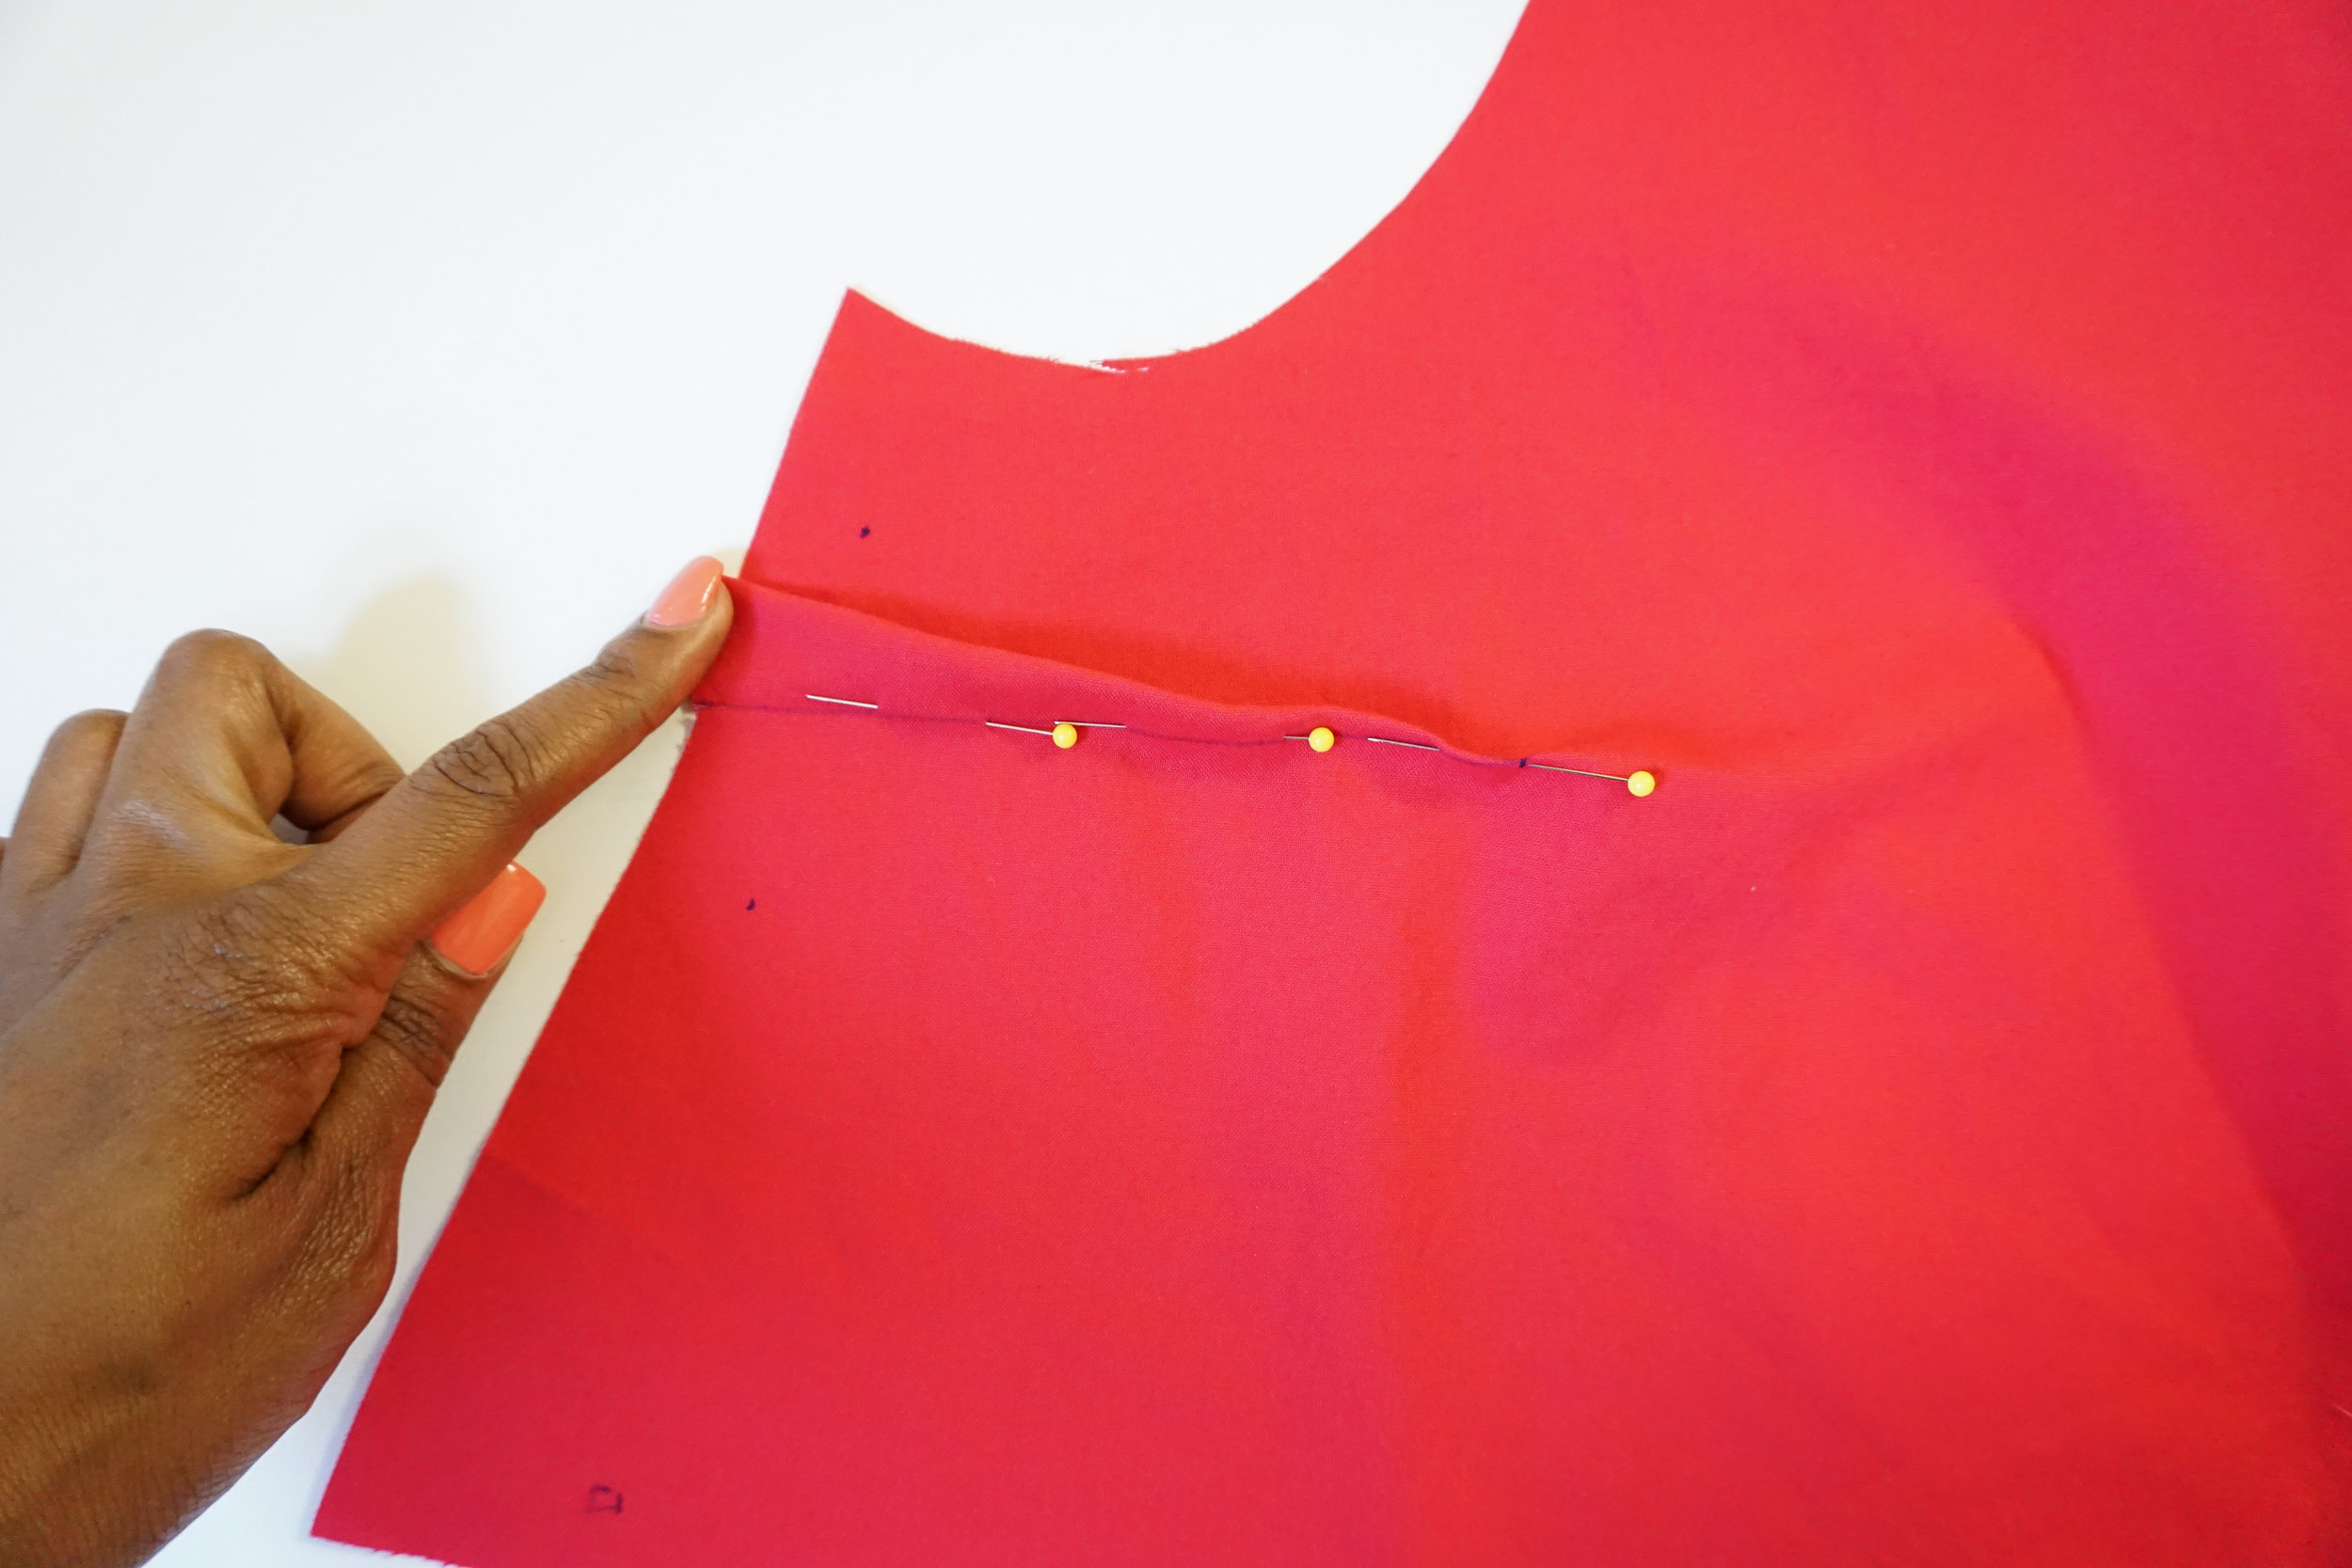 Set 2: Lets sew the front darts. Bring the dart legs together and pin in place.